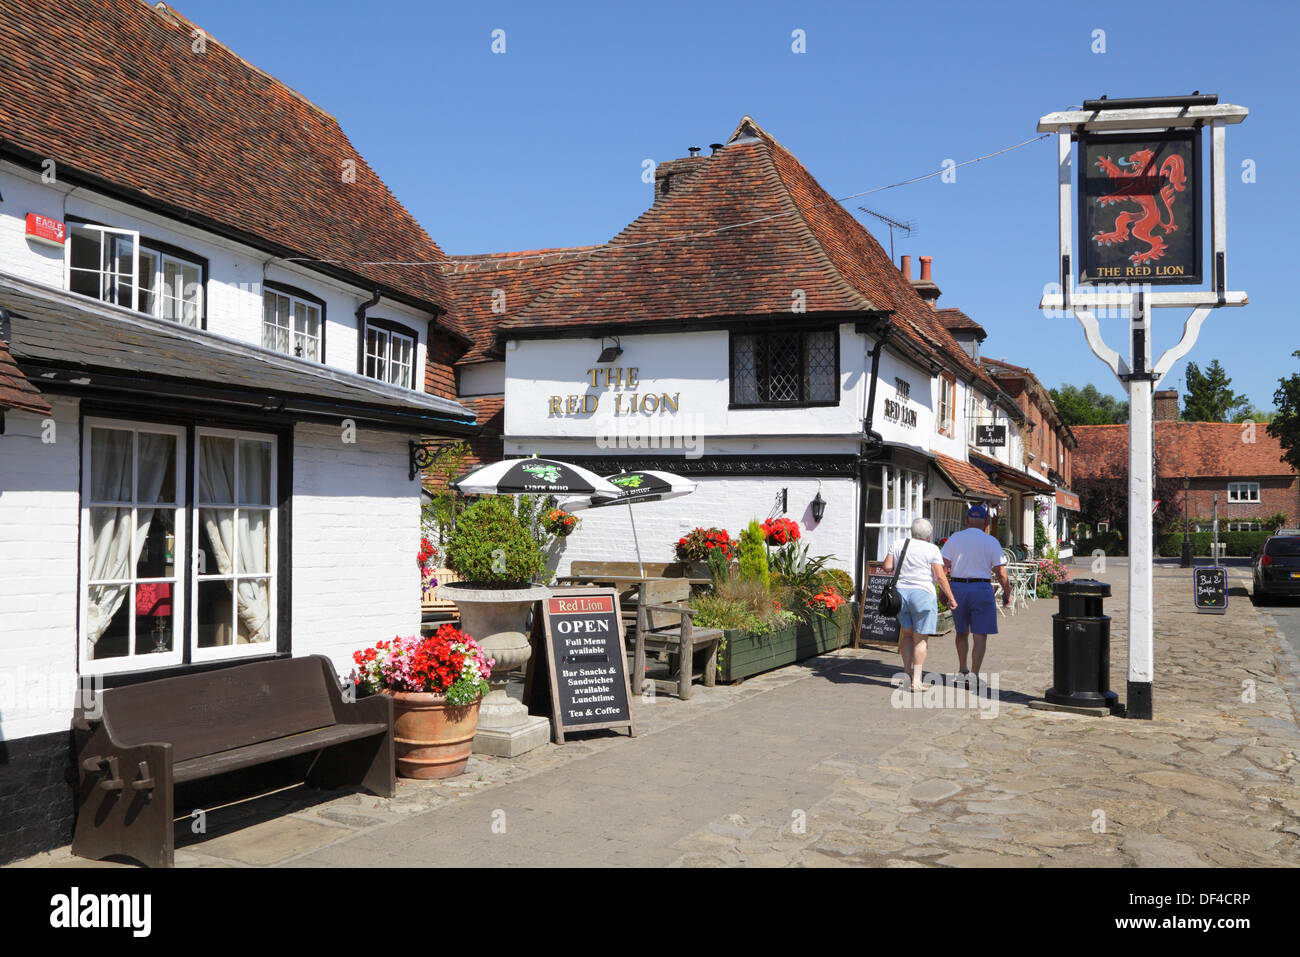 The Red Lion pub in Biddenden Village, Weald of Kent, England, UK, GB - Stock Image